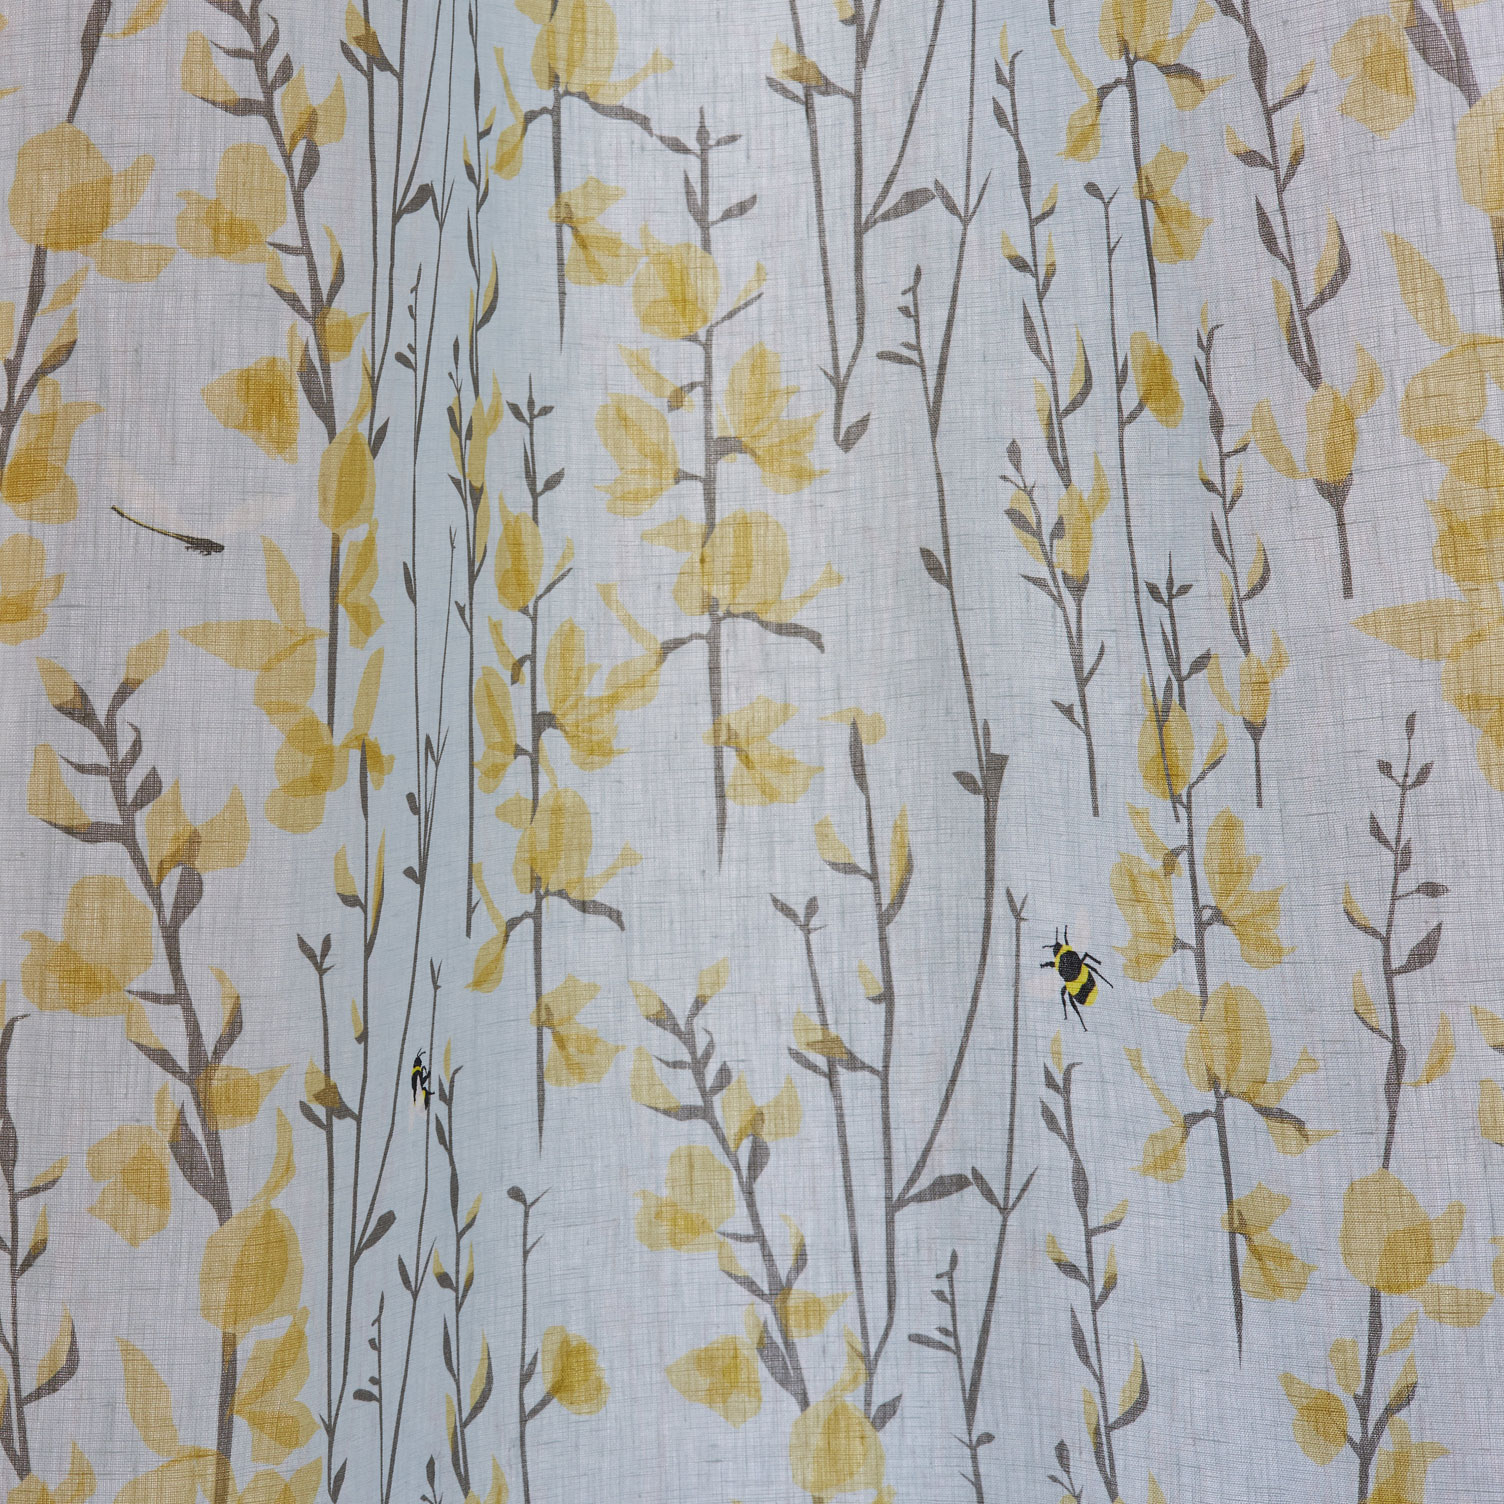 blue bee and dragonfly - sky blue and yellow - fabric by the linear metre - lorna syson living